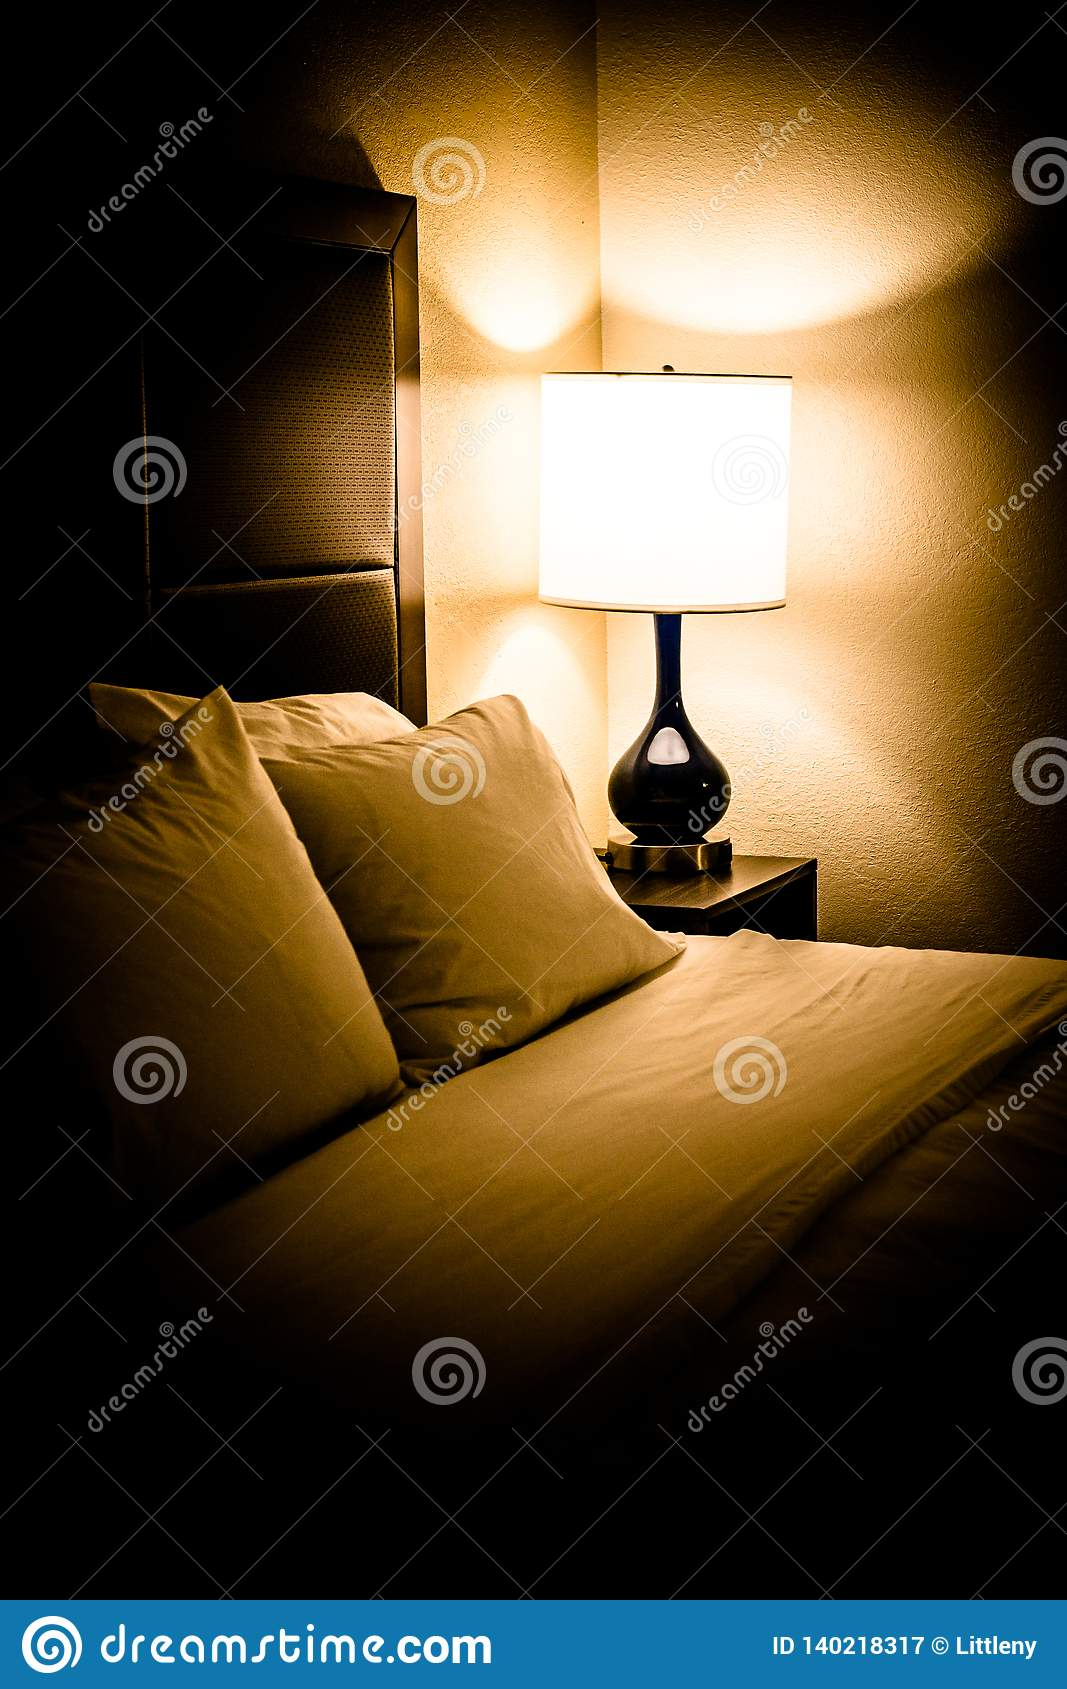 Bedroom Bed Light Night Lamp Stock Image Image Of Lamp Decorated 140218317